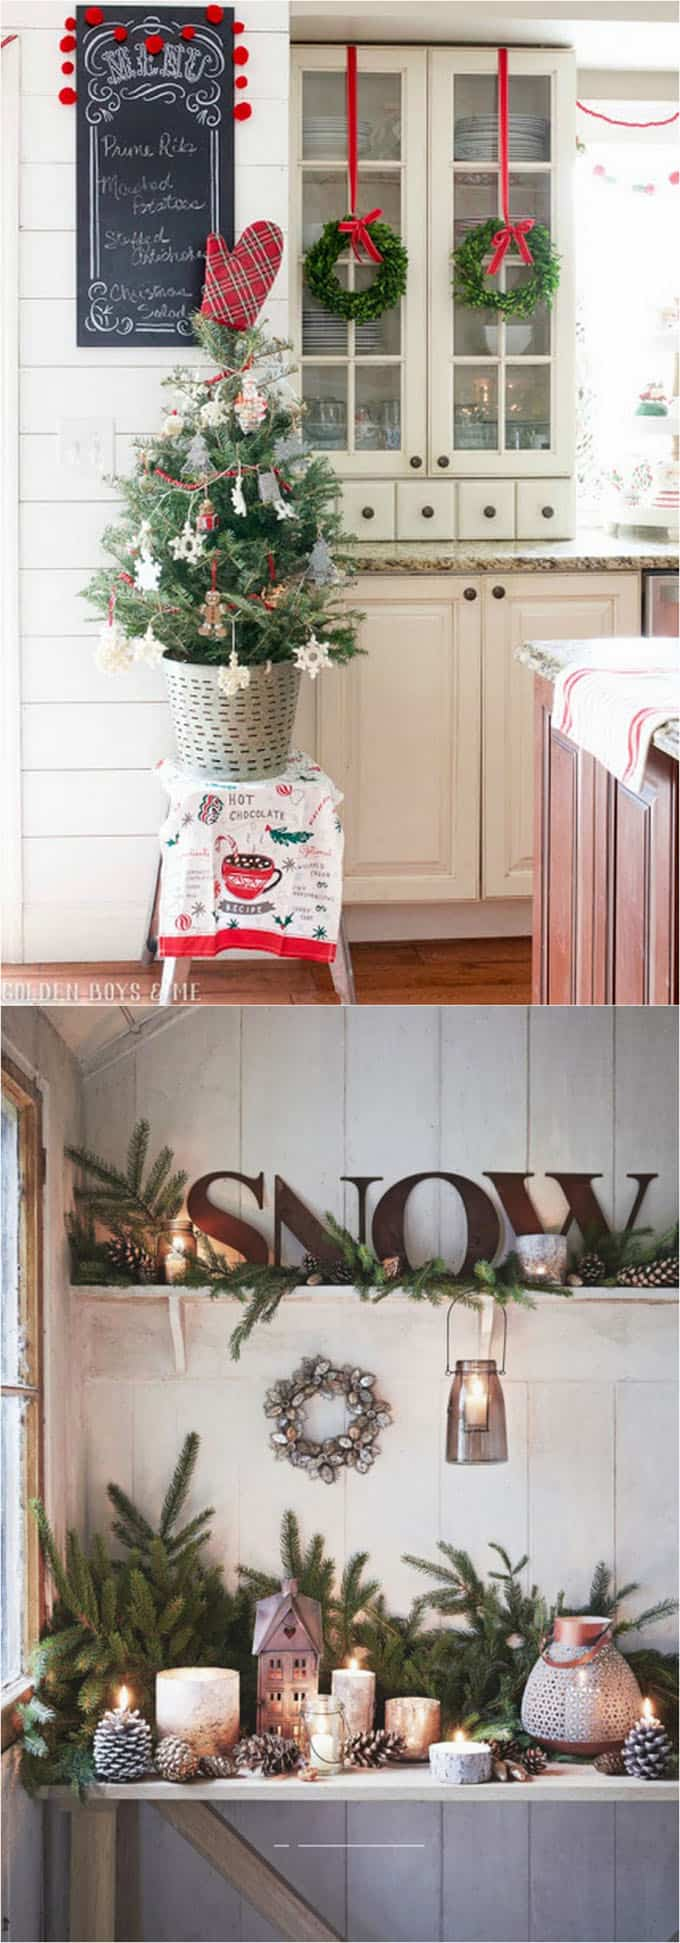 100+ Favorite Christmas Decorating Ideas For Every Room in Your ...